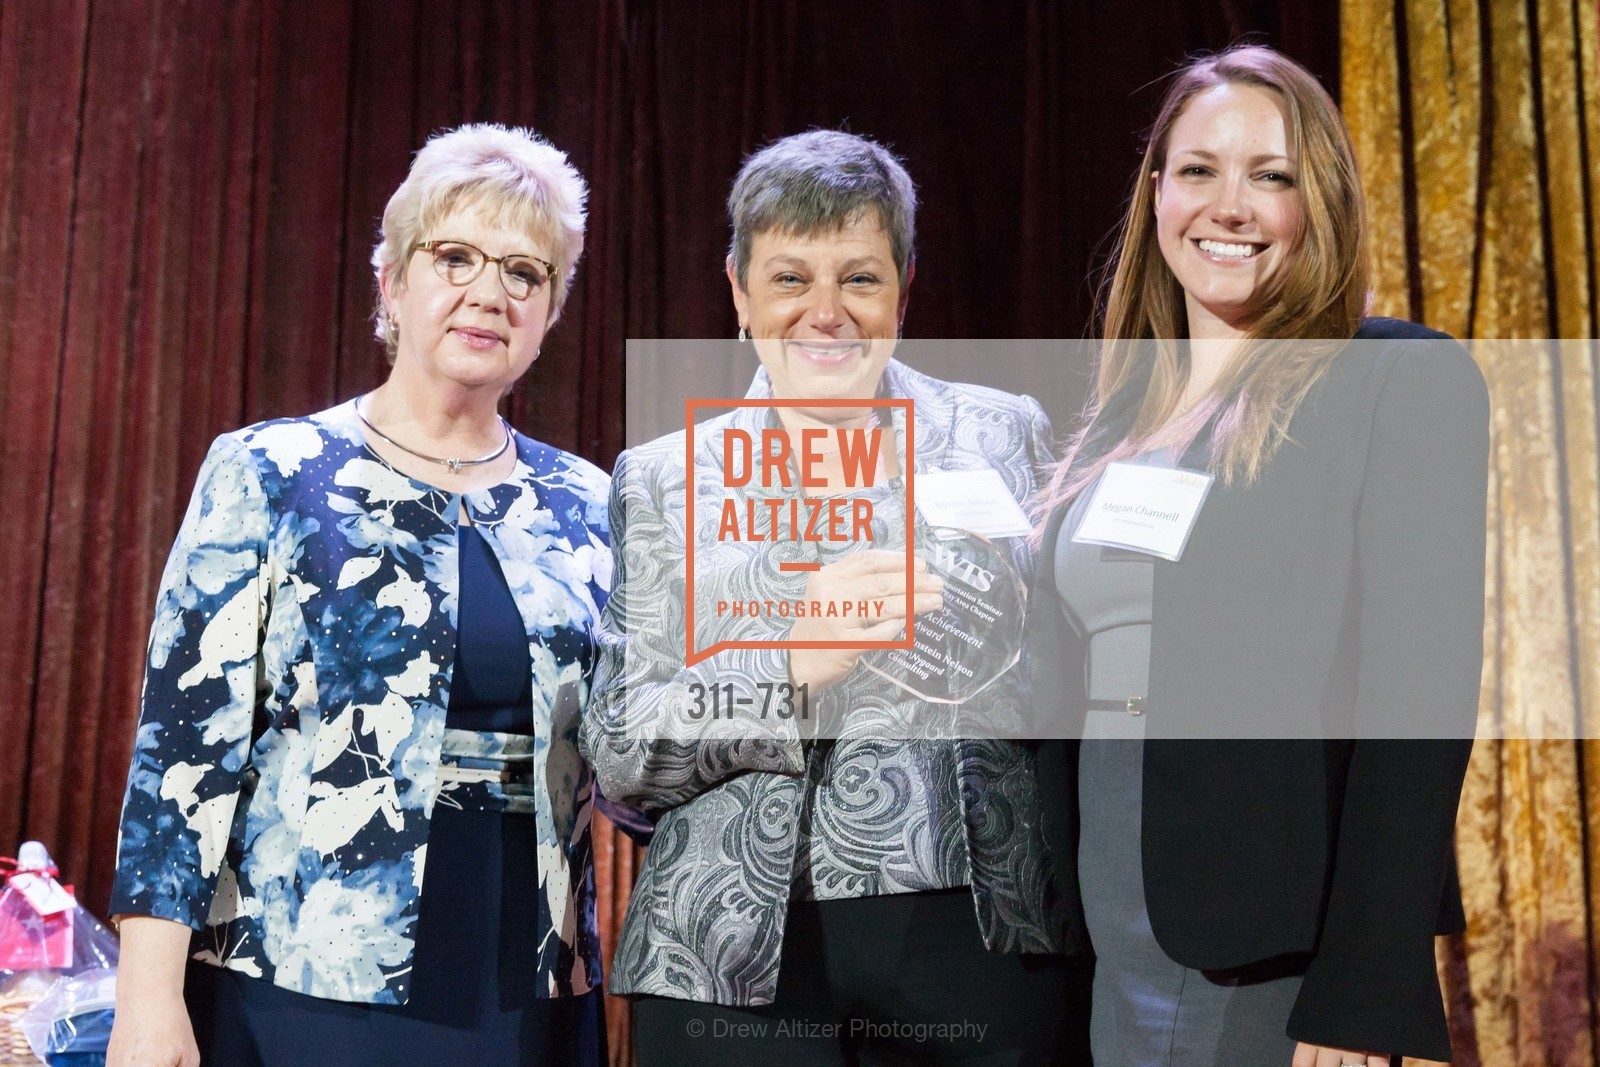 Darlene Gee, Bonnie Nelson, Megan Channell, WOMEN'S TRANSPORTATION SEMINAR SF Bay Area Chapter Annual Scholarship Awards, US, May 15th, 2015,Drew Altizer, Drew Altizer Photography, full-service agency, private events, San Francisco photographer, photographer california